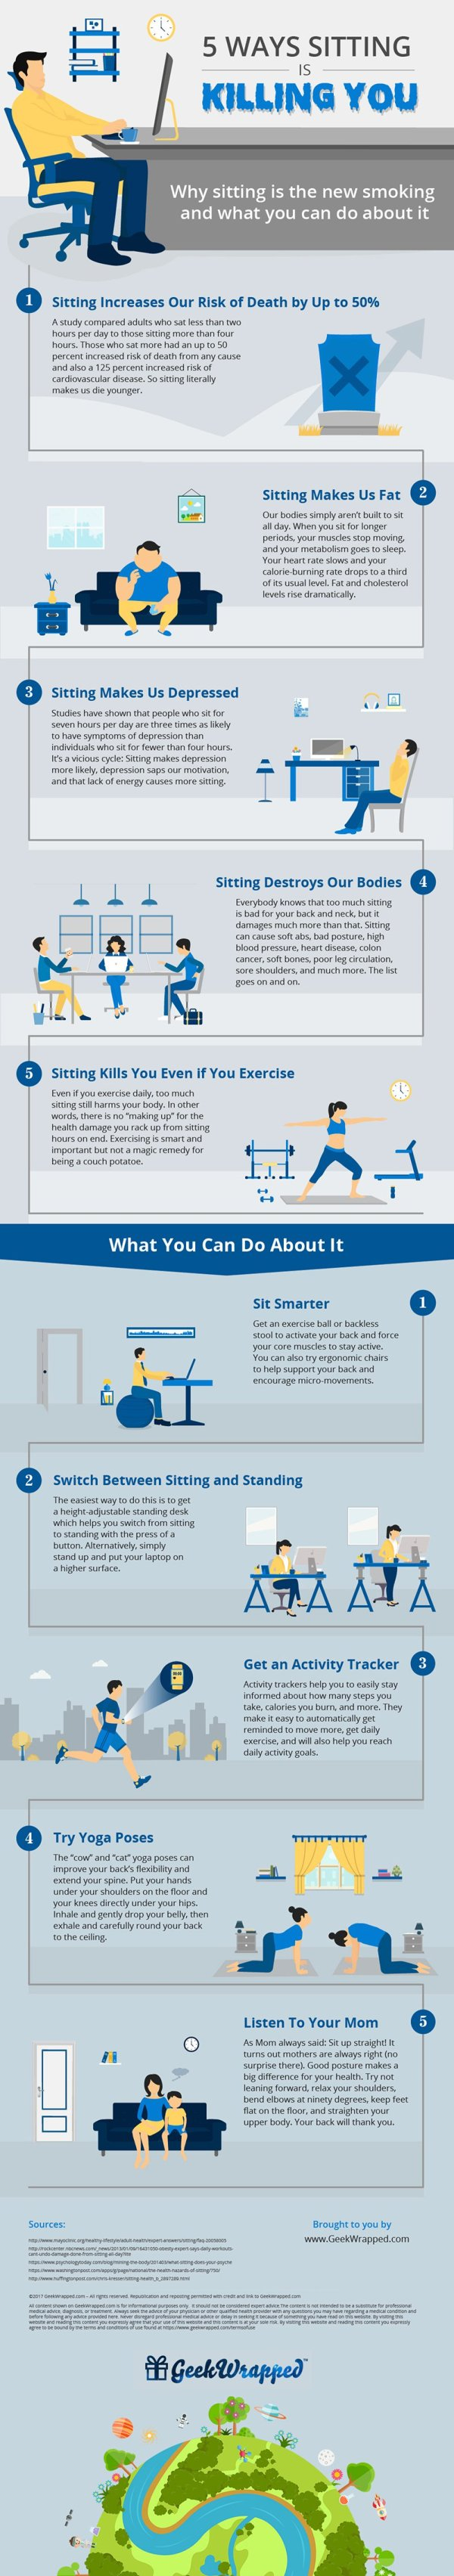 5-Ways-Sitting-is-Killing-You-infographic